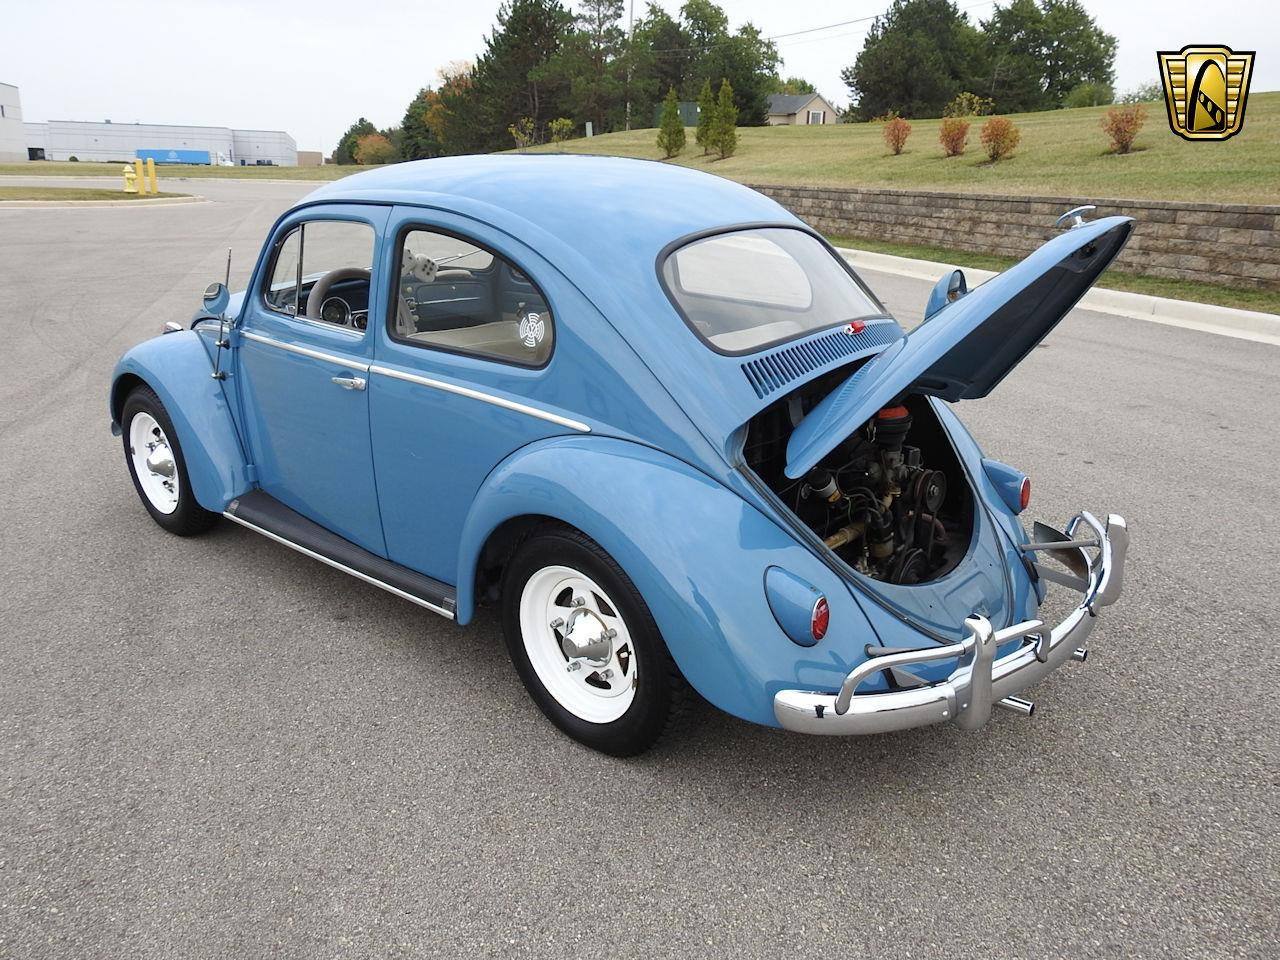 1959 Volkswagen Beetle For Sale Classiccars Com Cc 1032131